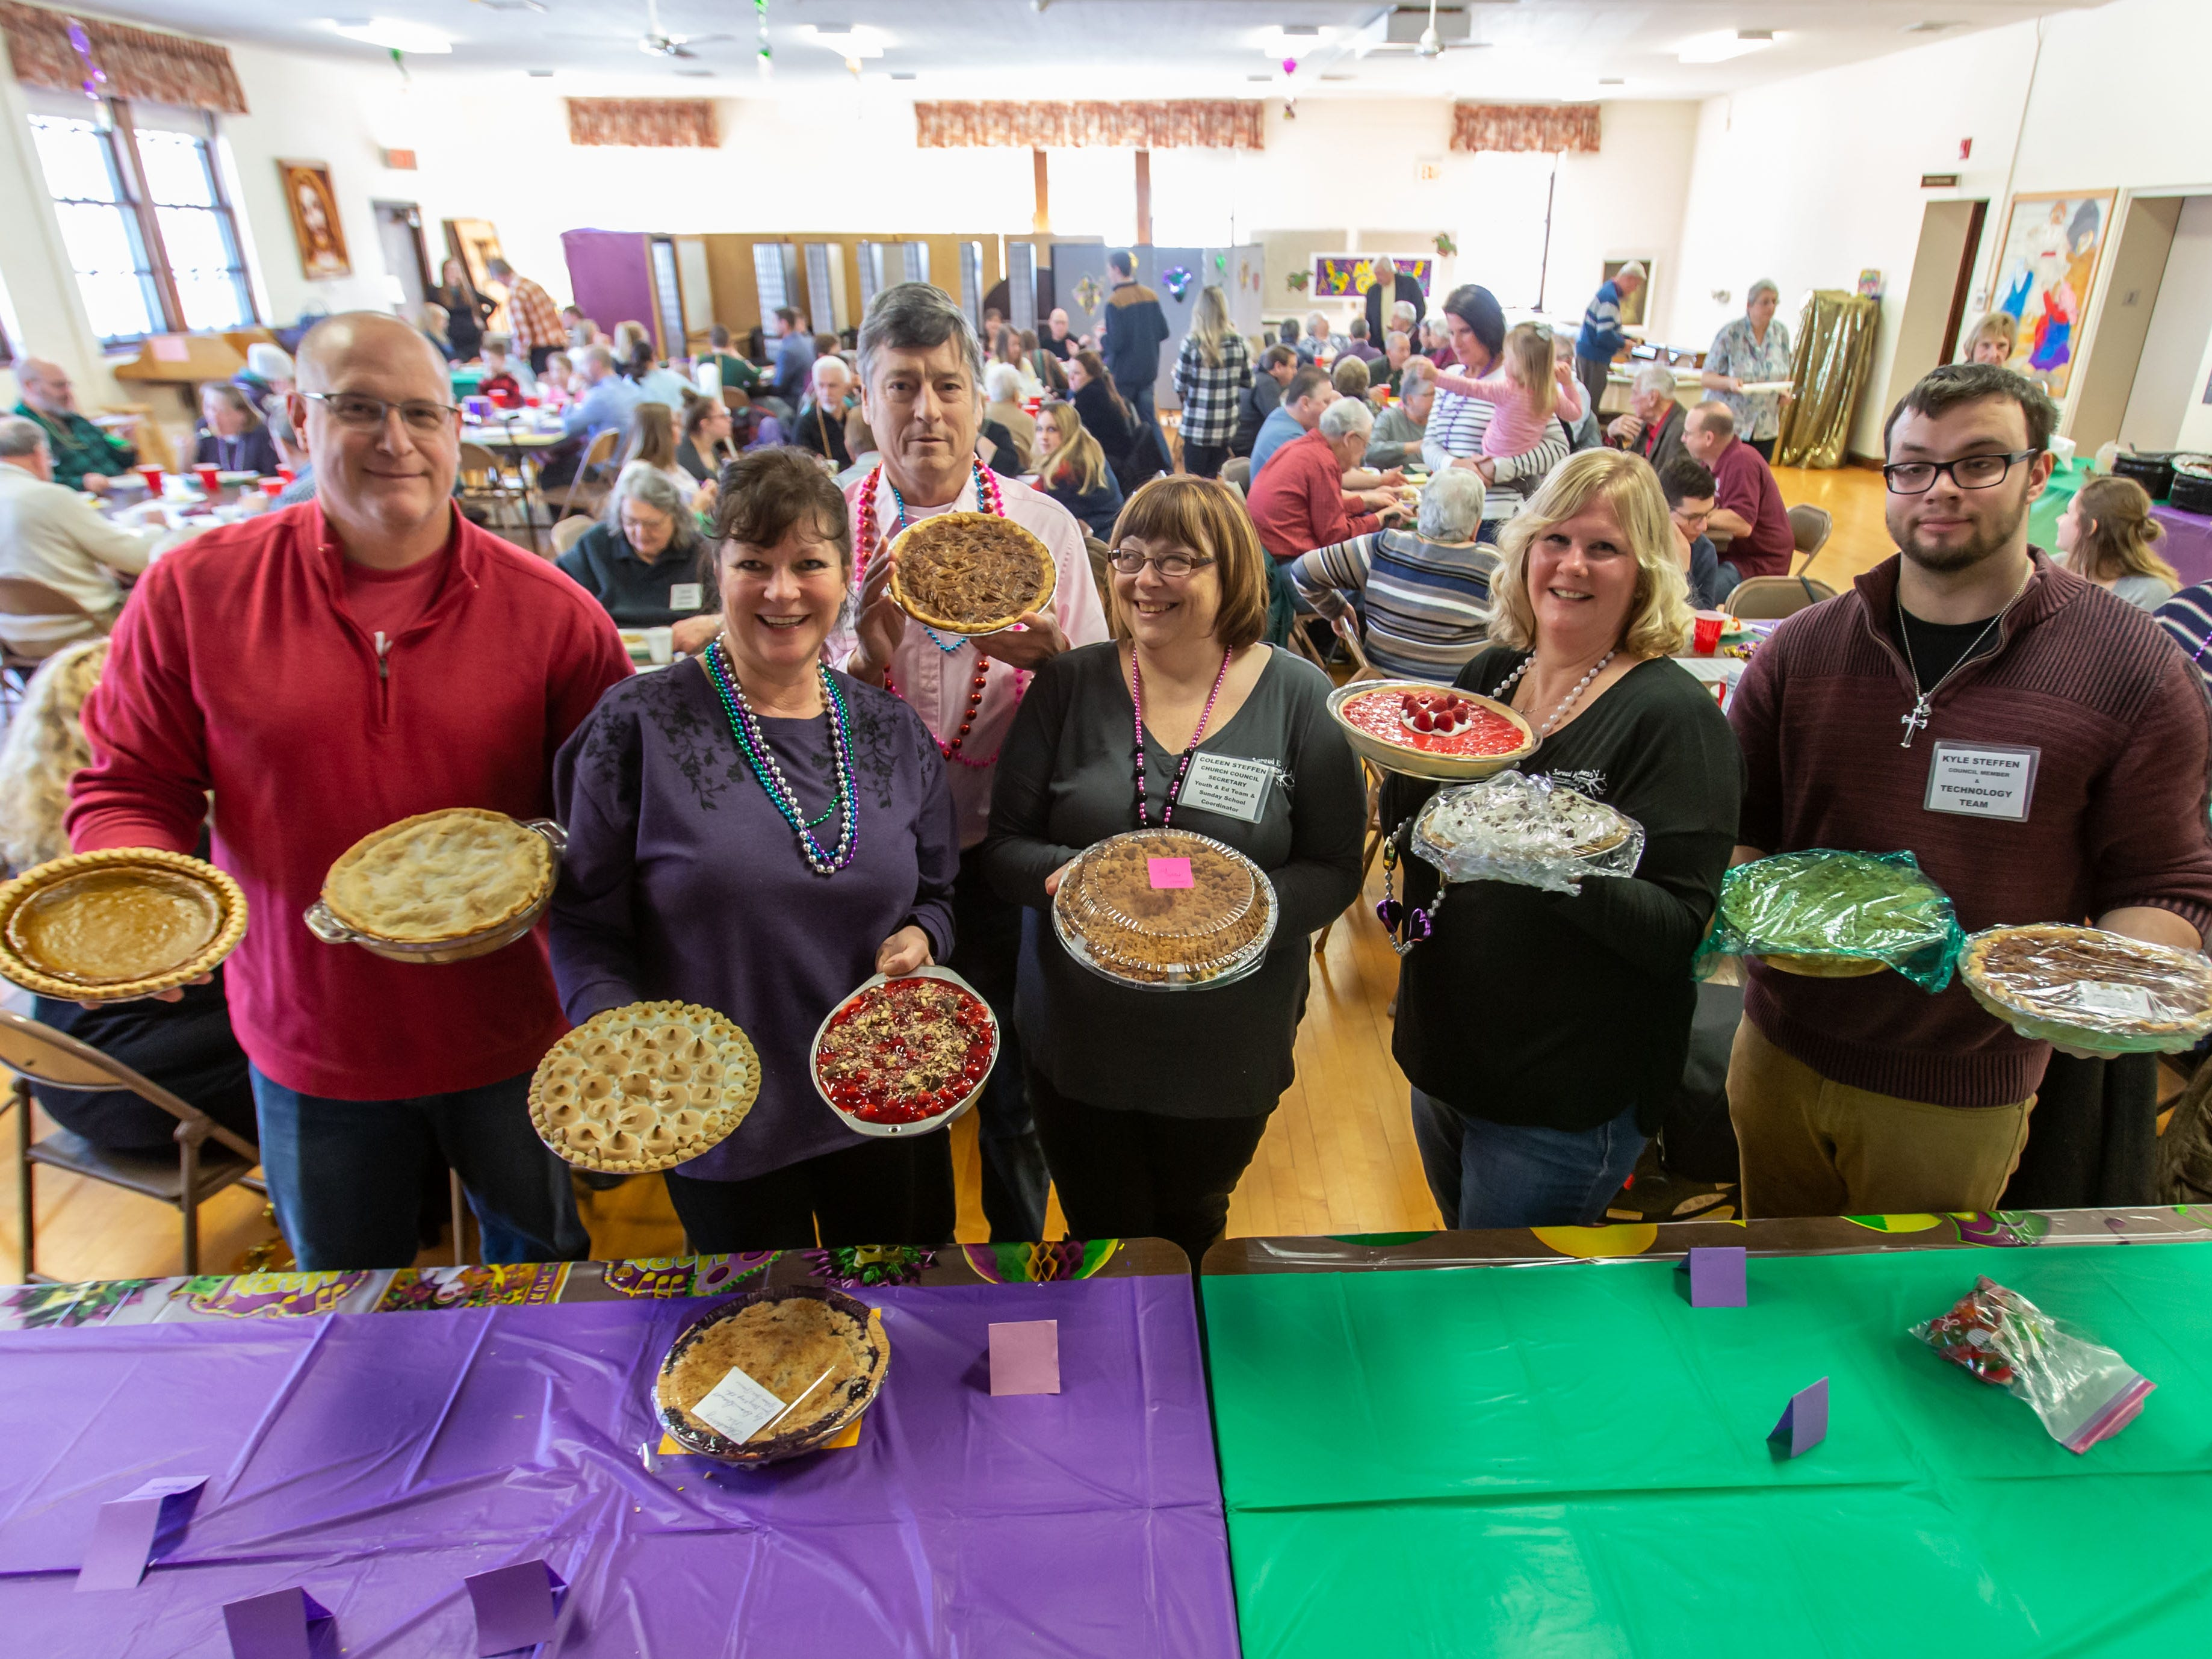 Parishioners (from left) Mike Wendorf, Debbie Wolff, Ray Jacques, Coleen Steffen, Holly Hupfer and Kyle Steffen display a few of the home-baked pies up for auction during the Mardi Gras Pig Roast and pie auction at Immanuel Lutheran Church in Cedarburg on Sunday, March 3, 2019. The event is a fundraiser for the church.